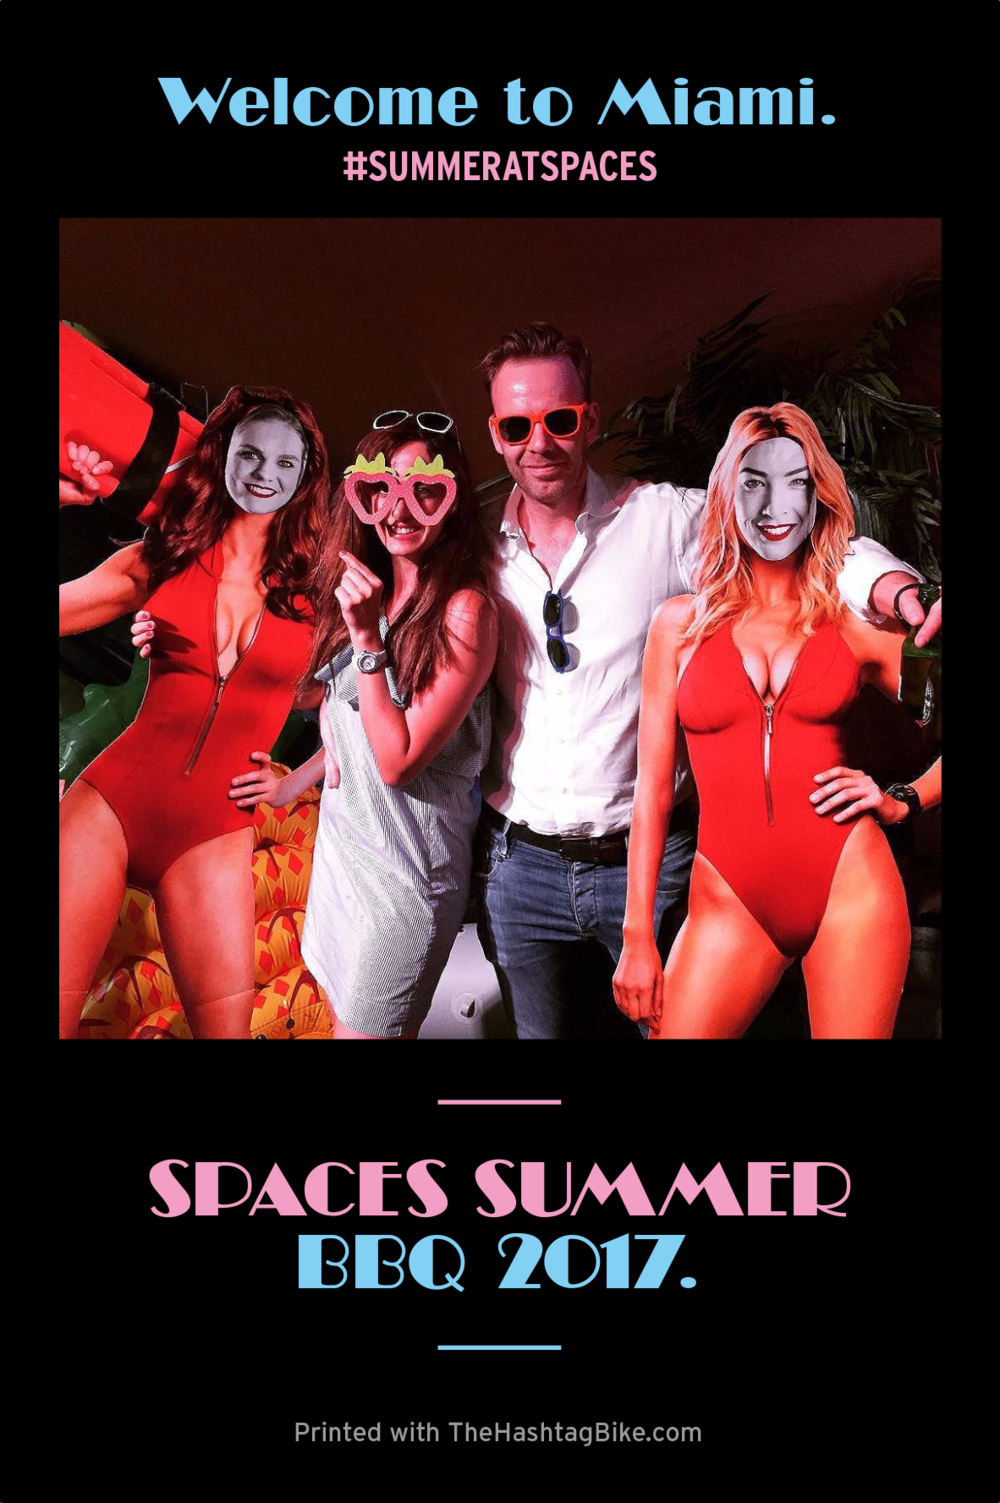 summeratspaces_thehashtagbike3.png